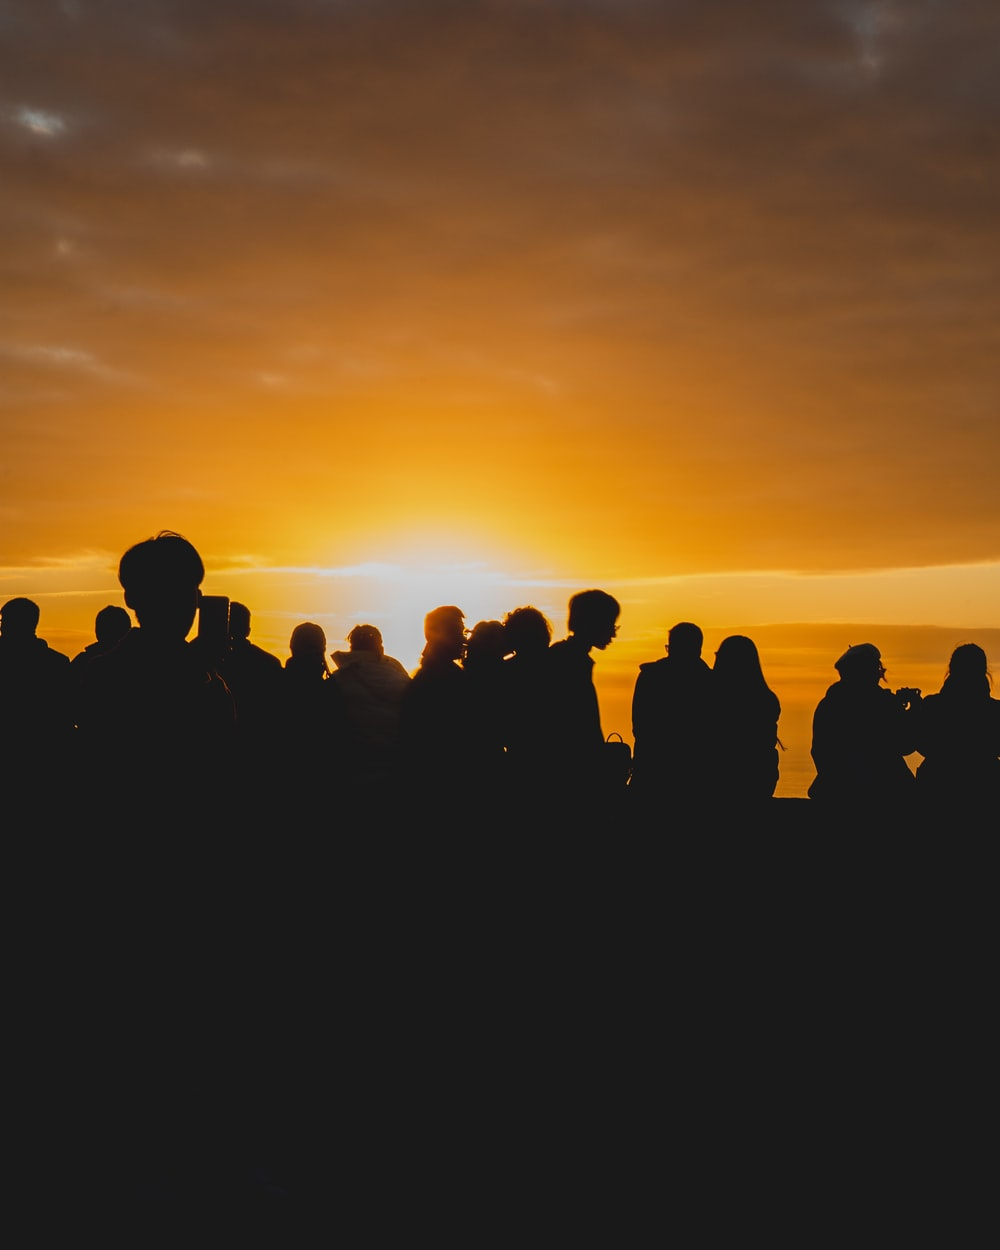 silhouette of people standing during sunset